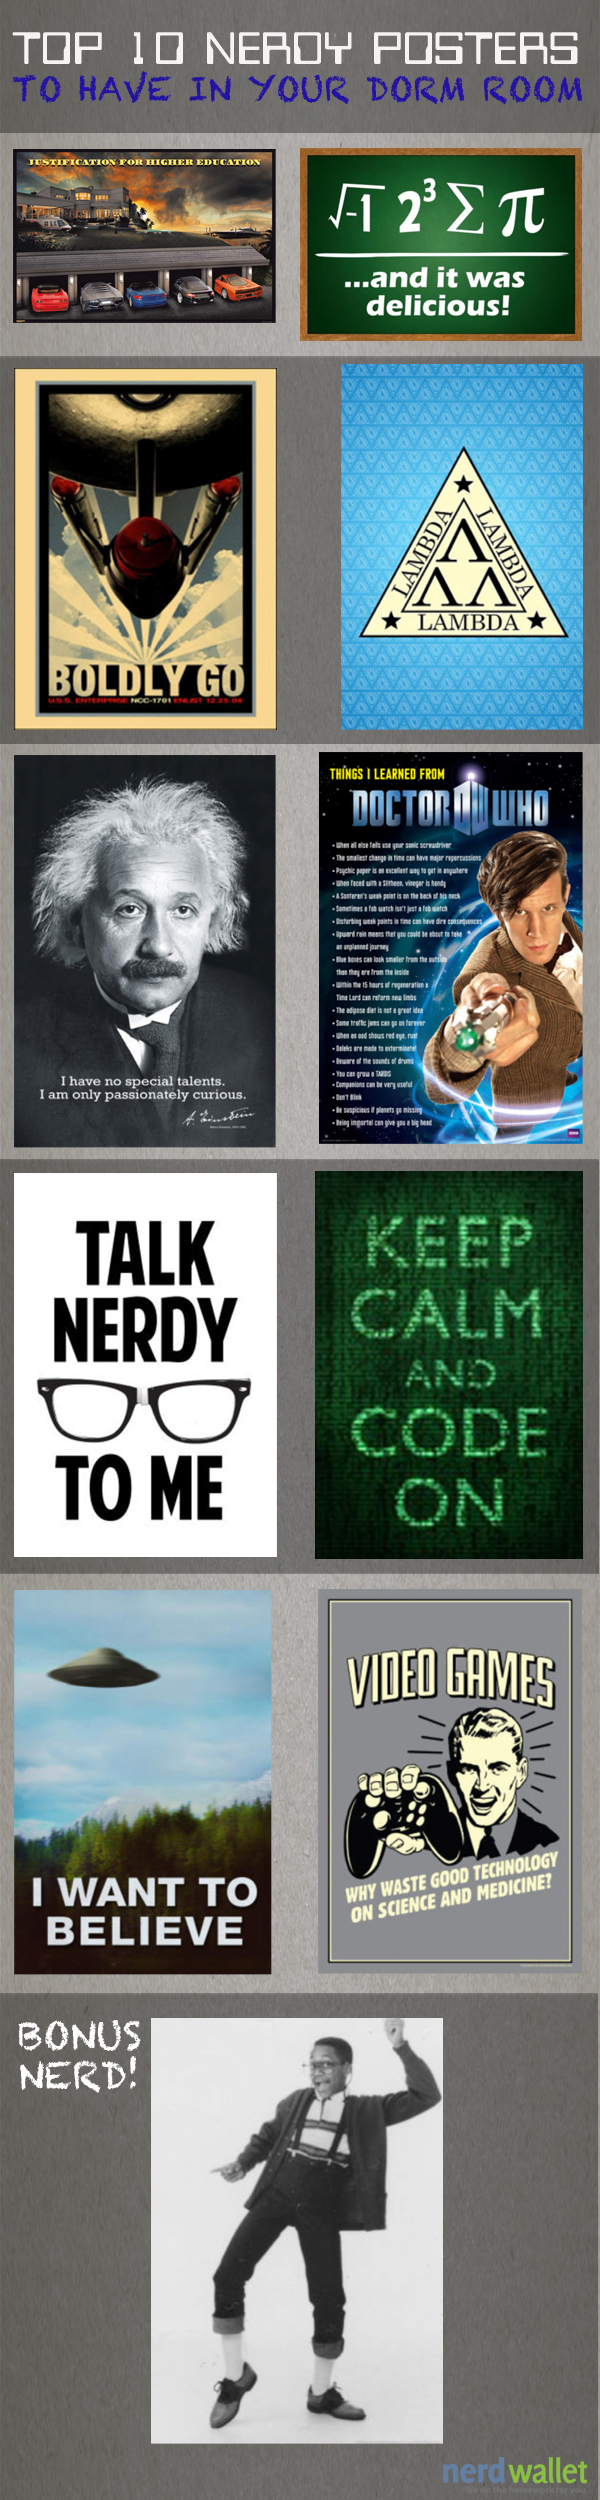 Top 10 Nerdy Posters to have in your dorm room